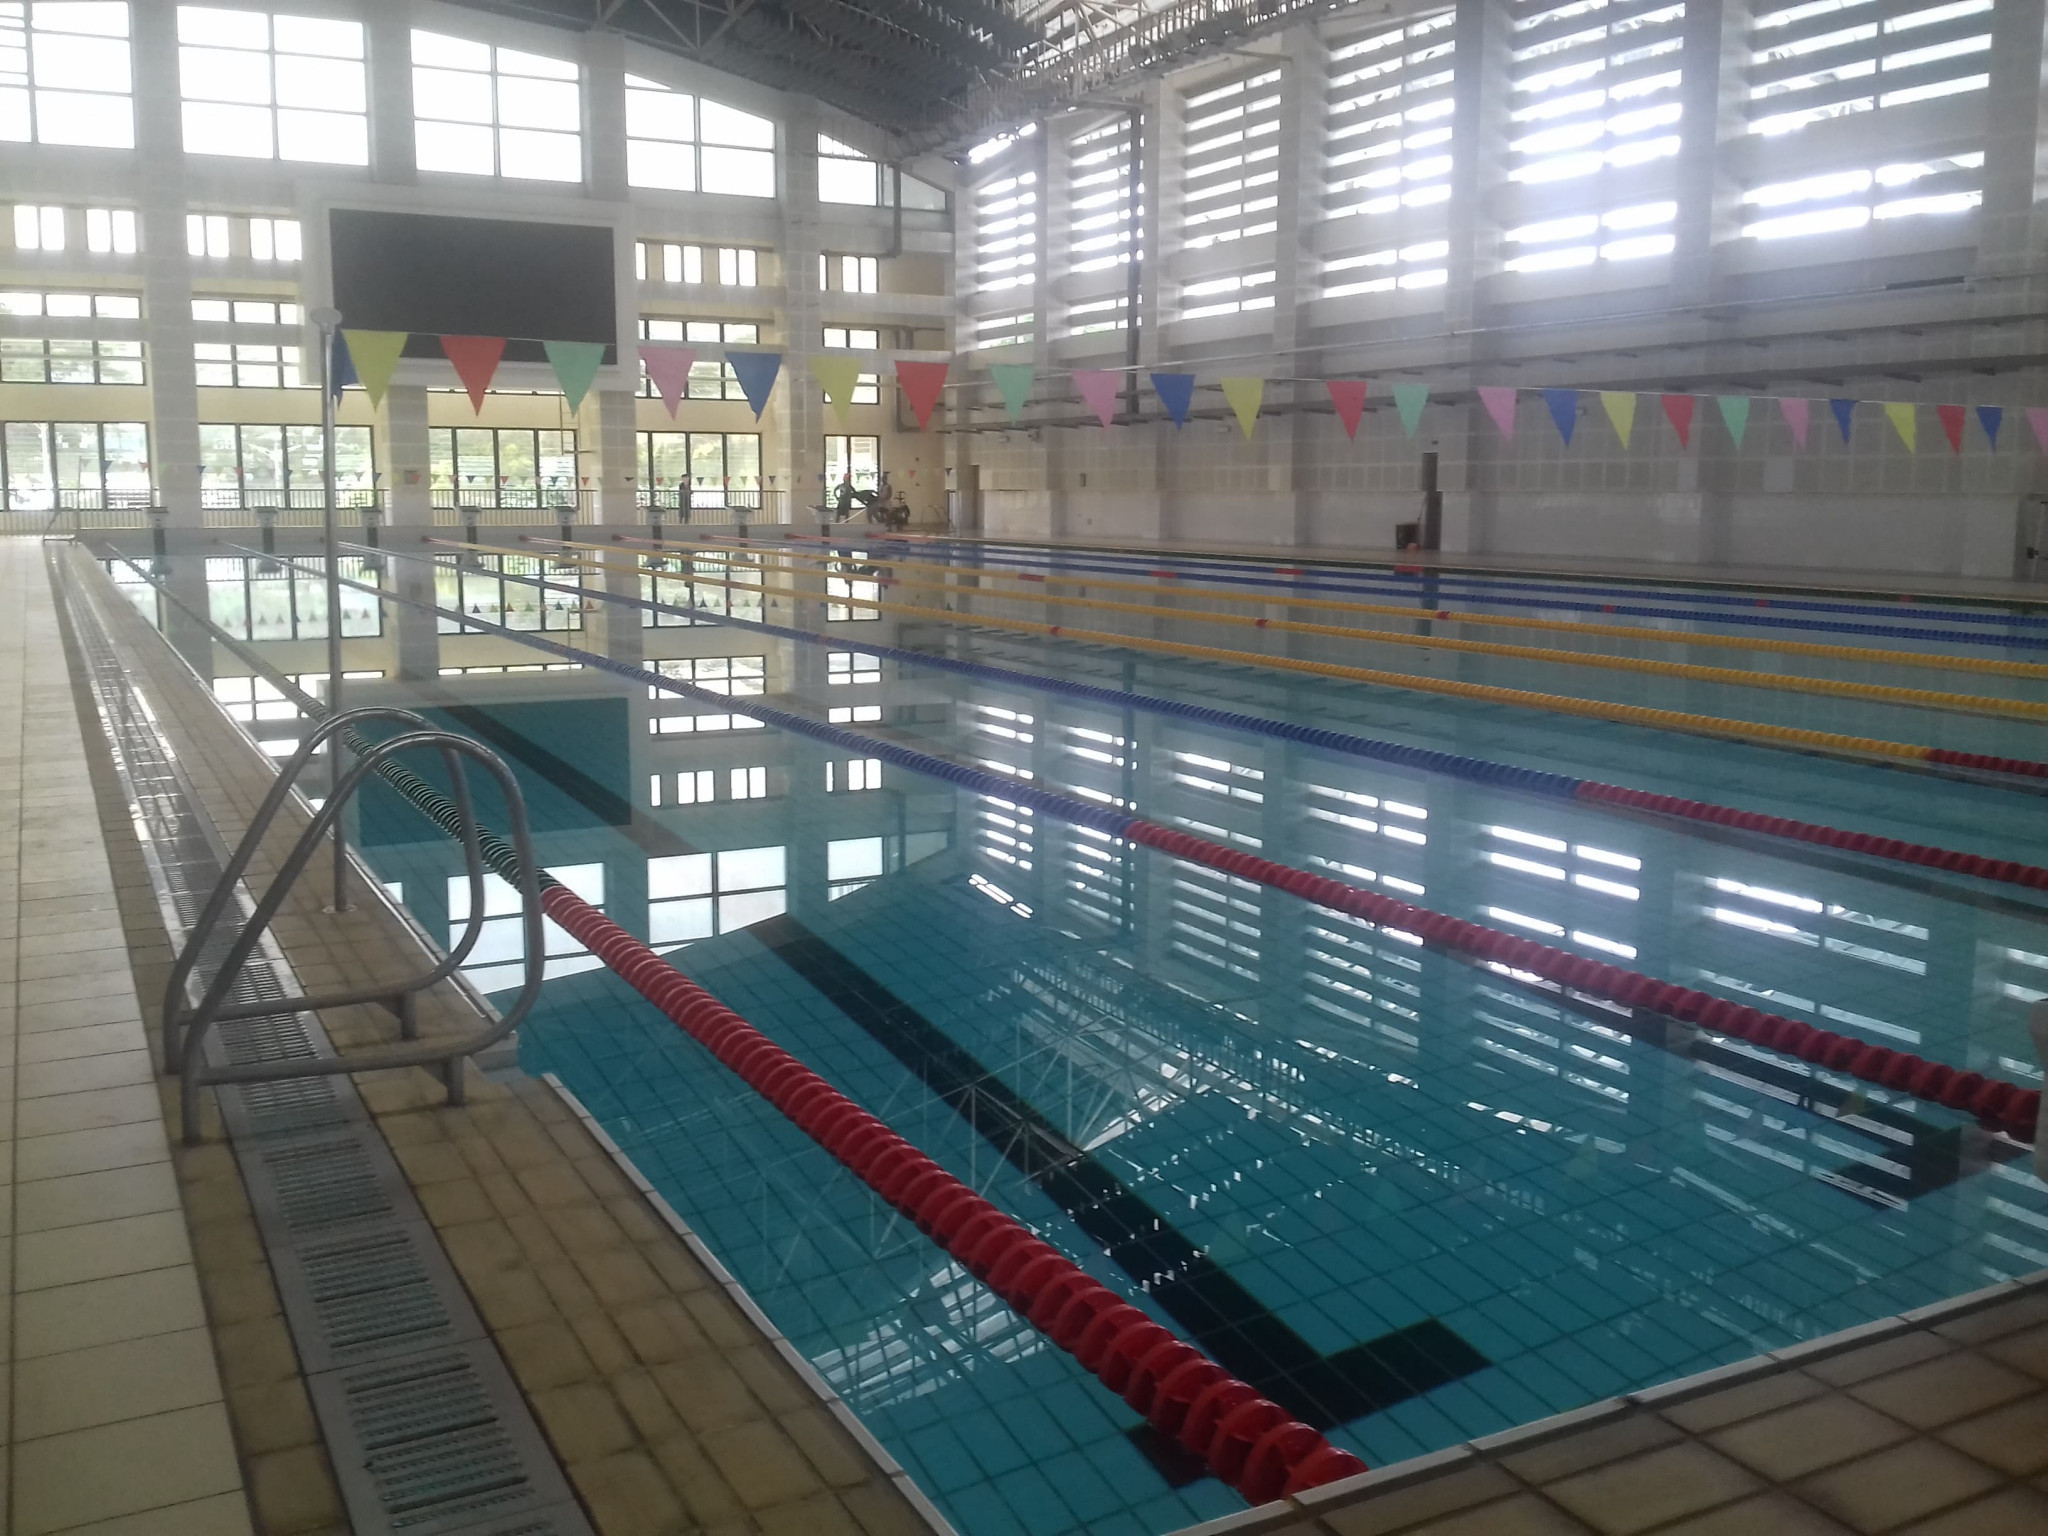 The Faleata swimming venue will be refurbished for the Games ©ITG